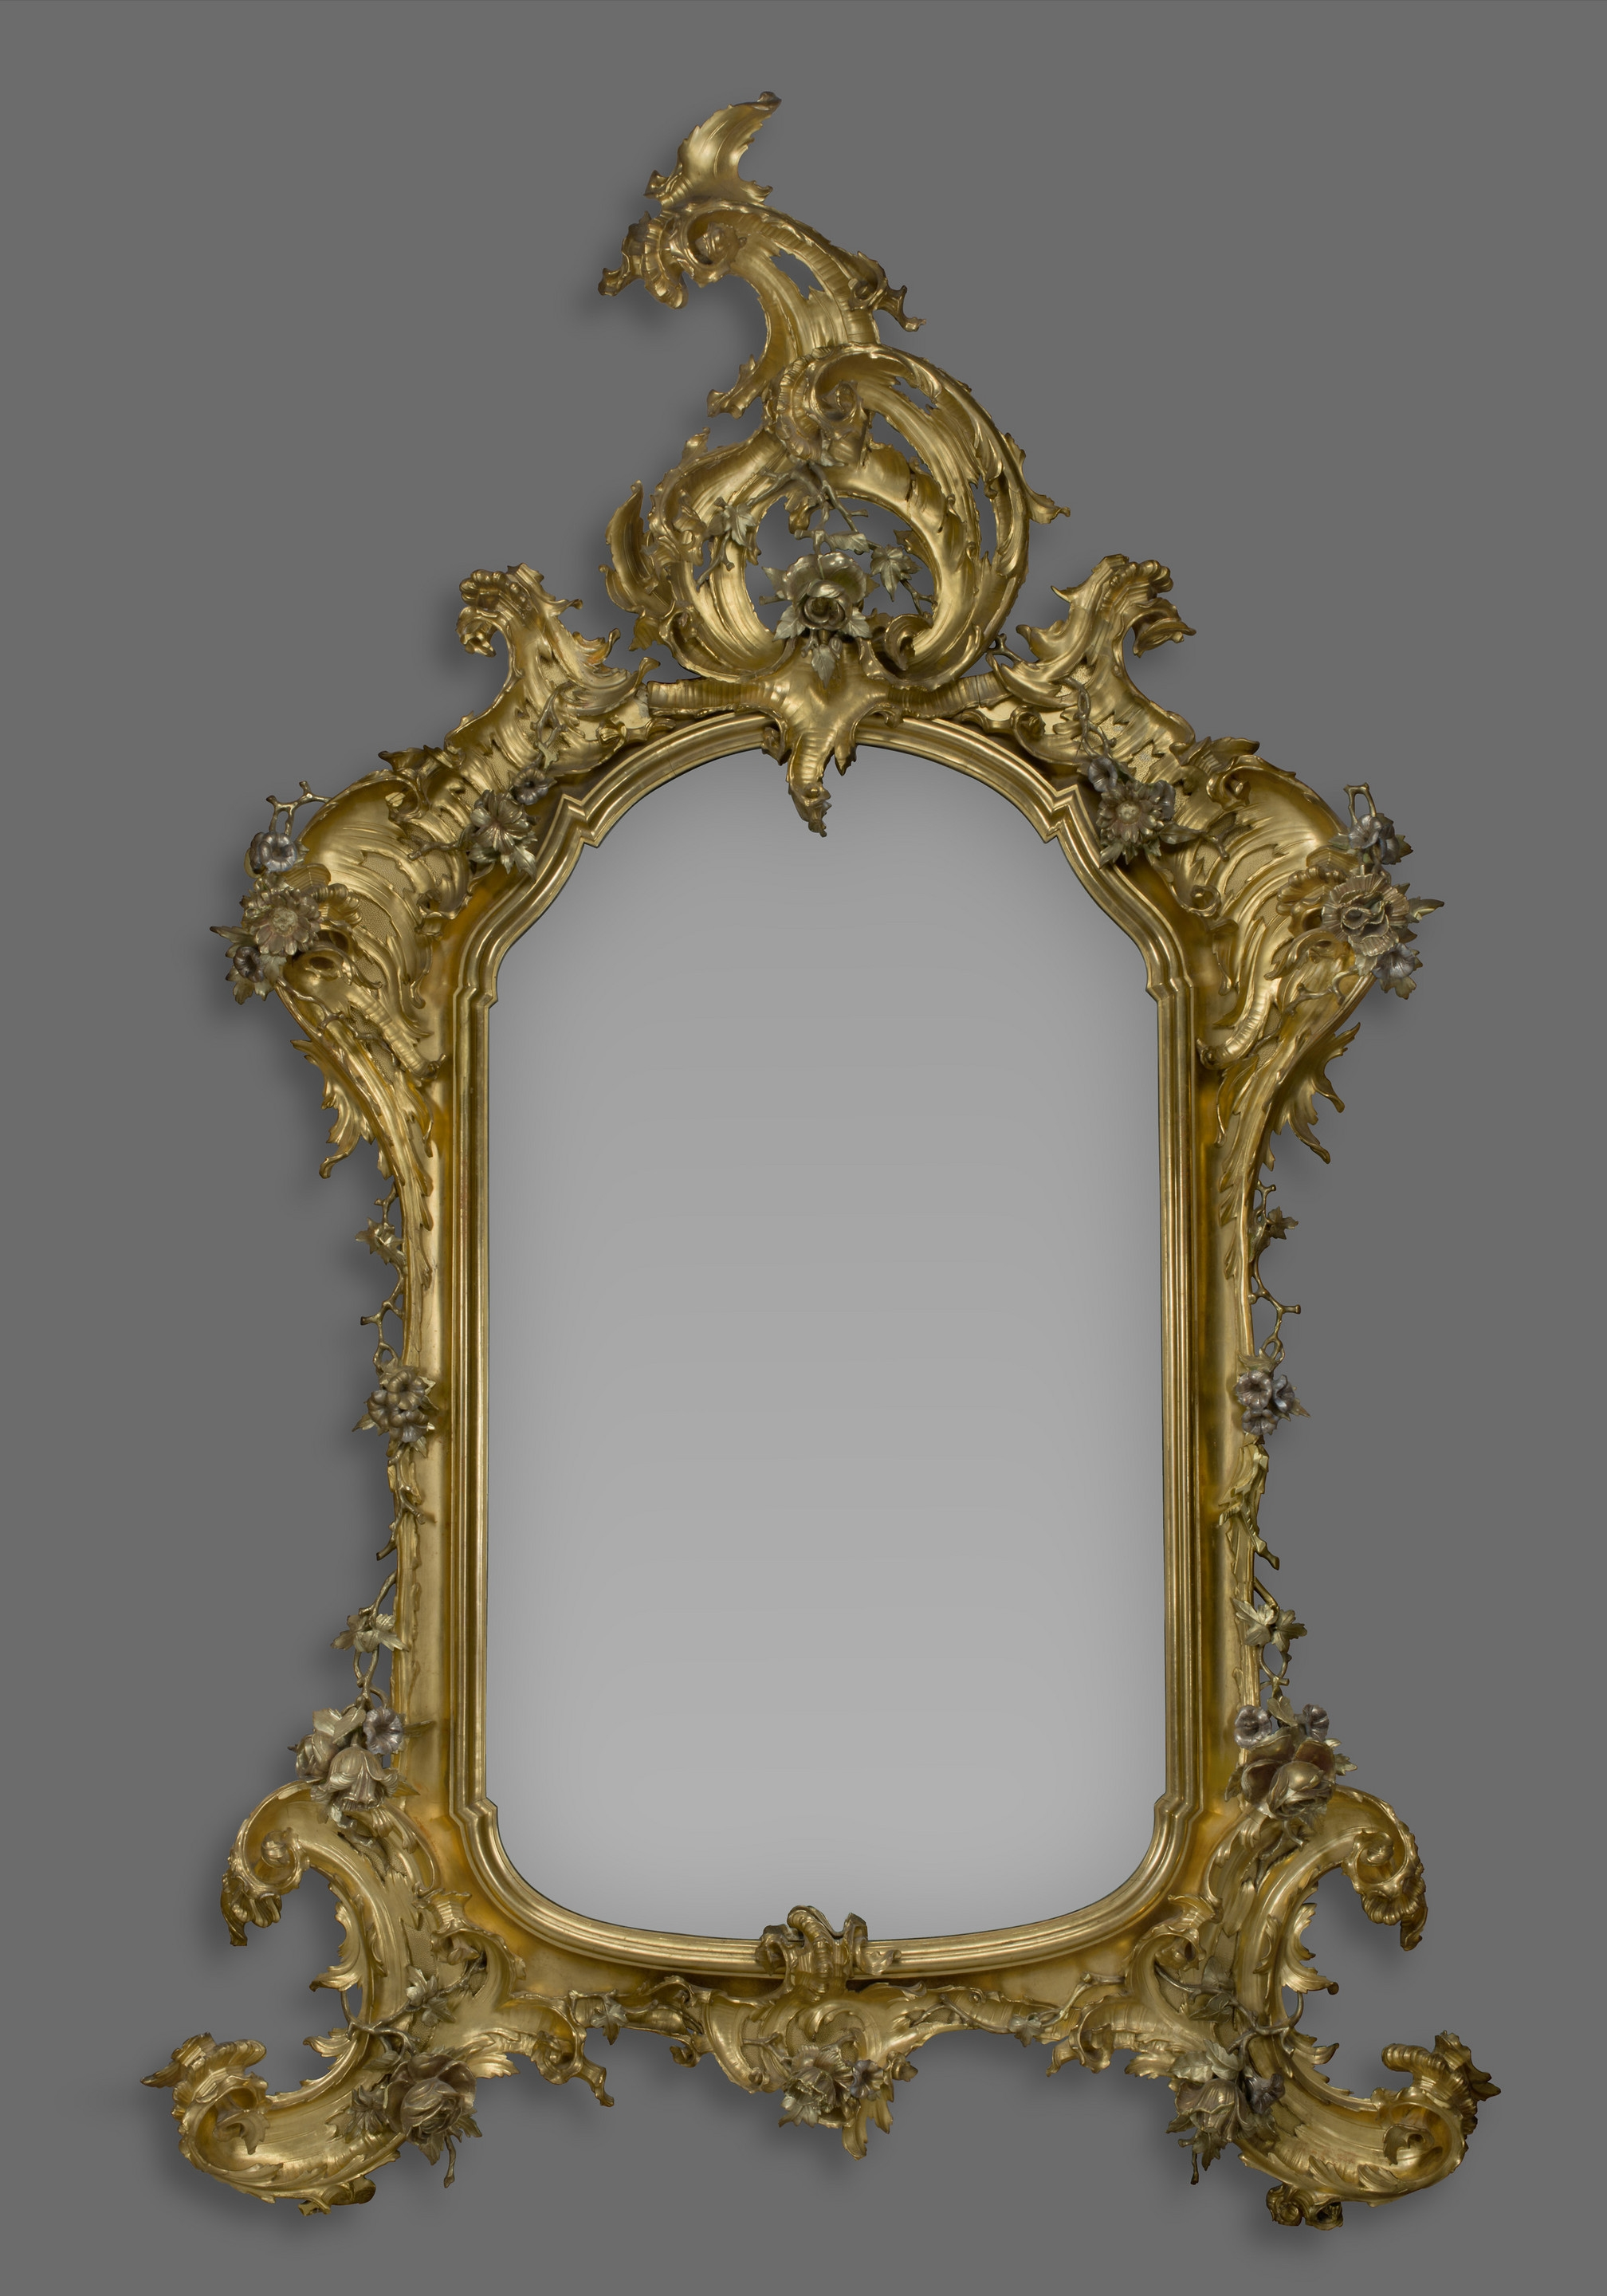 Furniture Gilt Wood England Rococo The Uks Premier Antiques With Regard To Rococo Style Mirrors (Image 6 of 15)